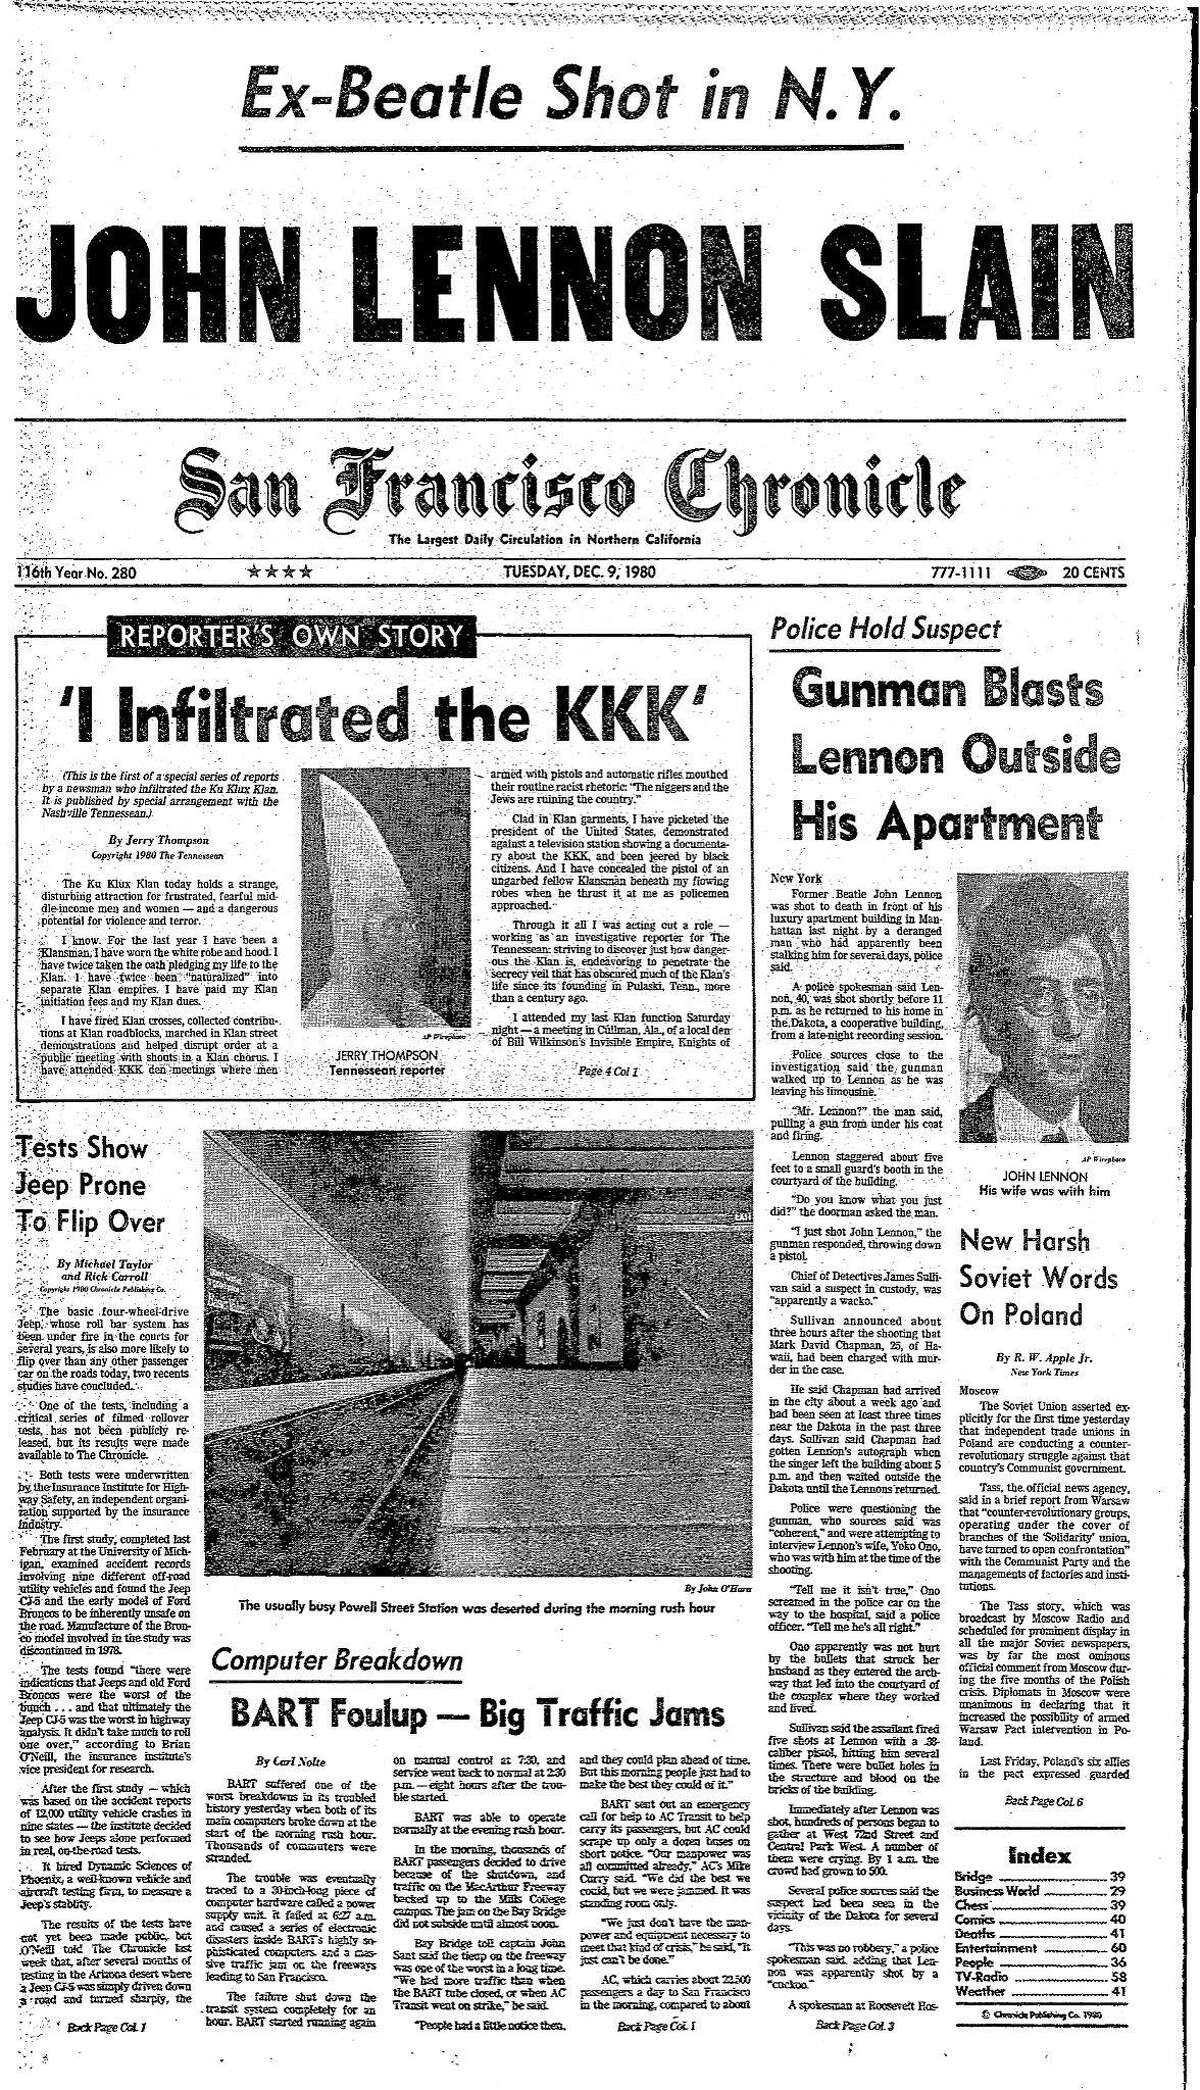 Historic Chronicle Front Page December 09, 1980 Former Beatle John Lennon is shot outside his apartment in New York City Chron365, Chroncover